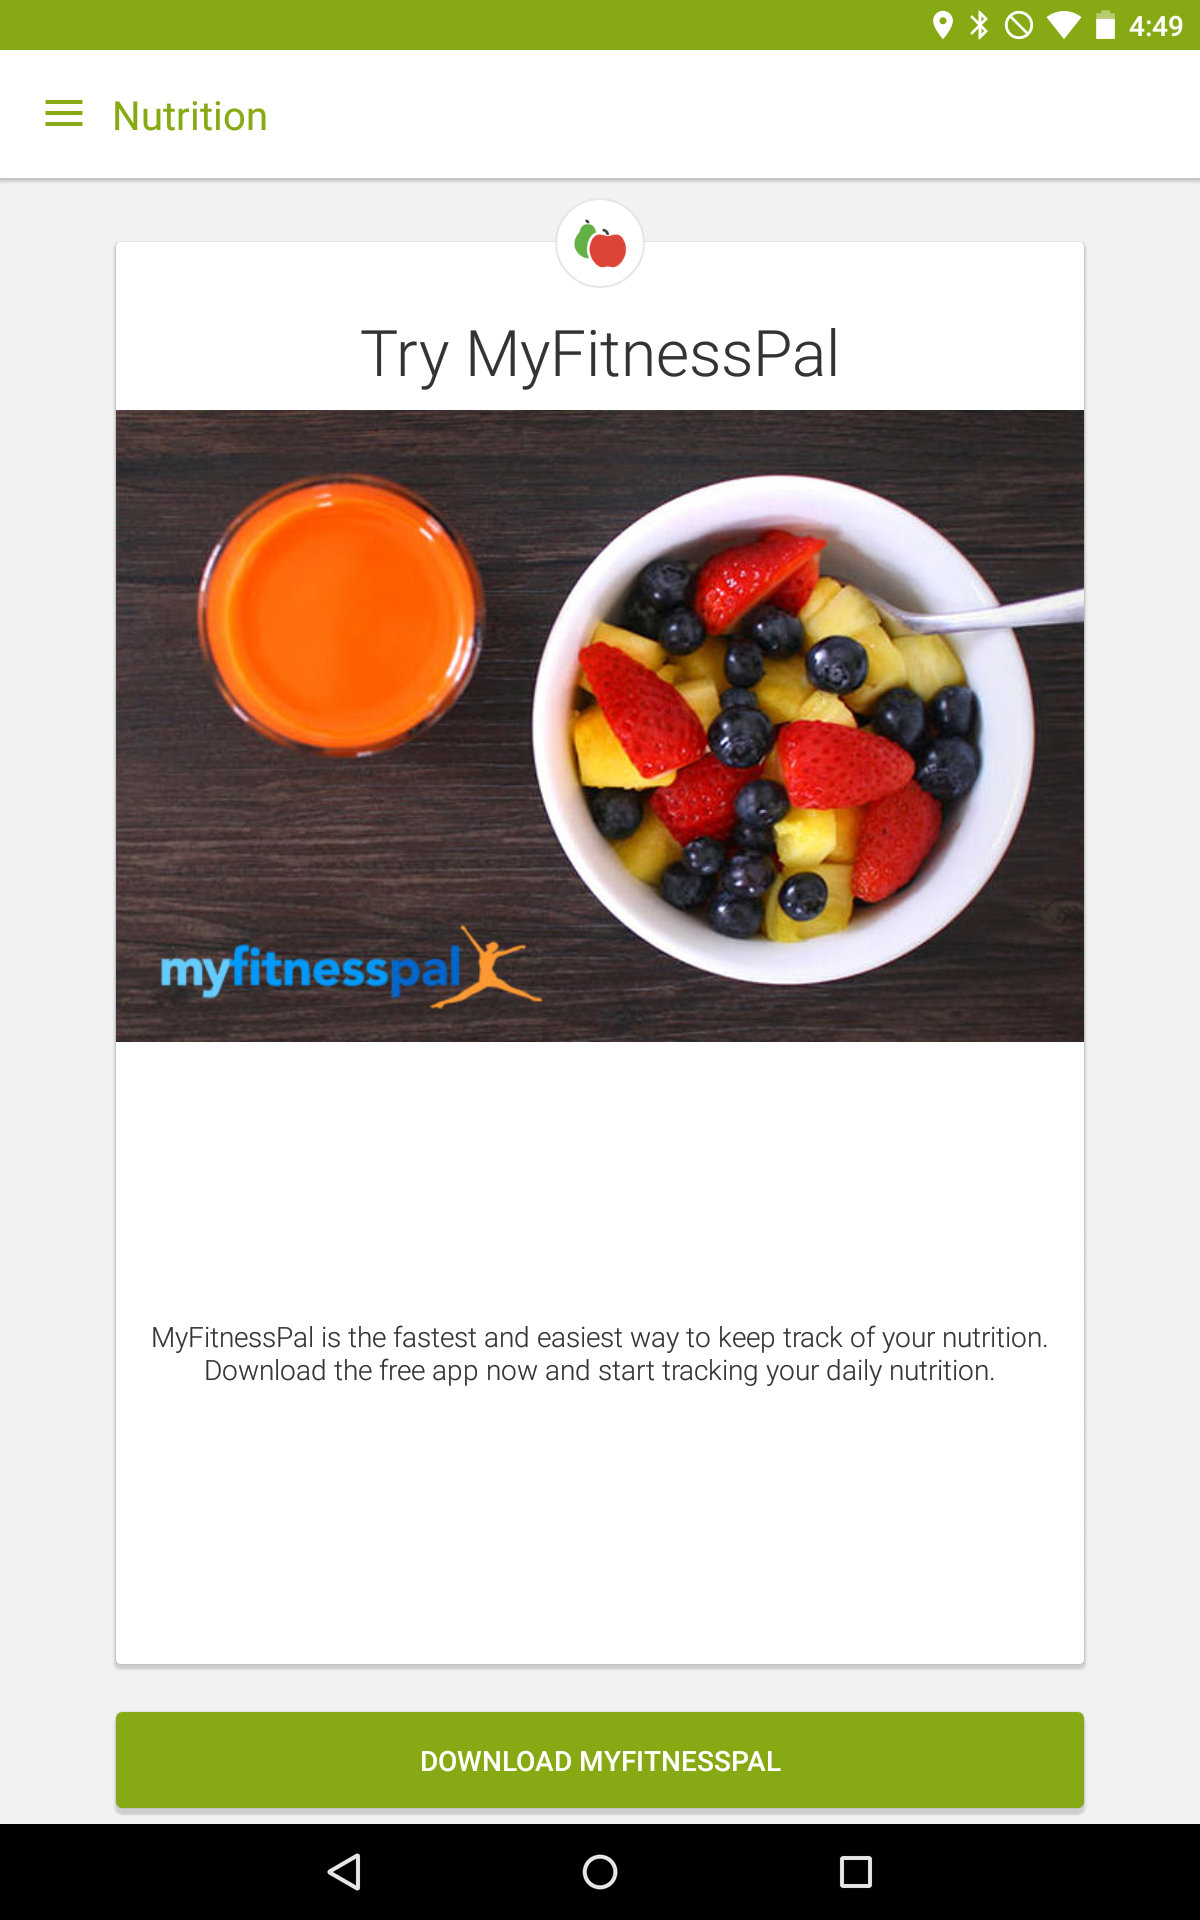 myfitnesspal news - Android Police - Android news, reviews